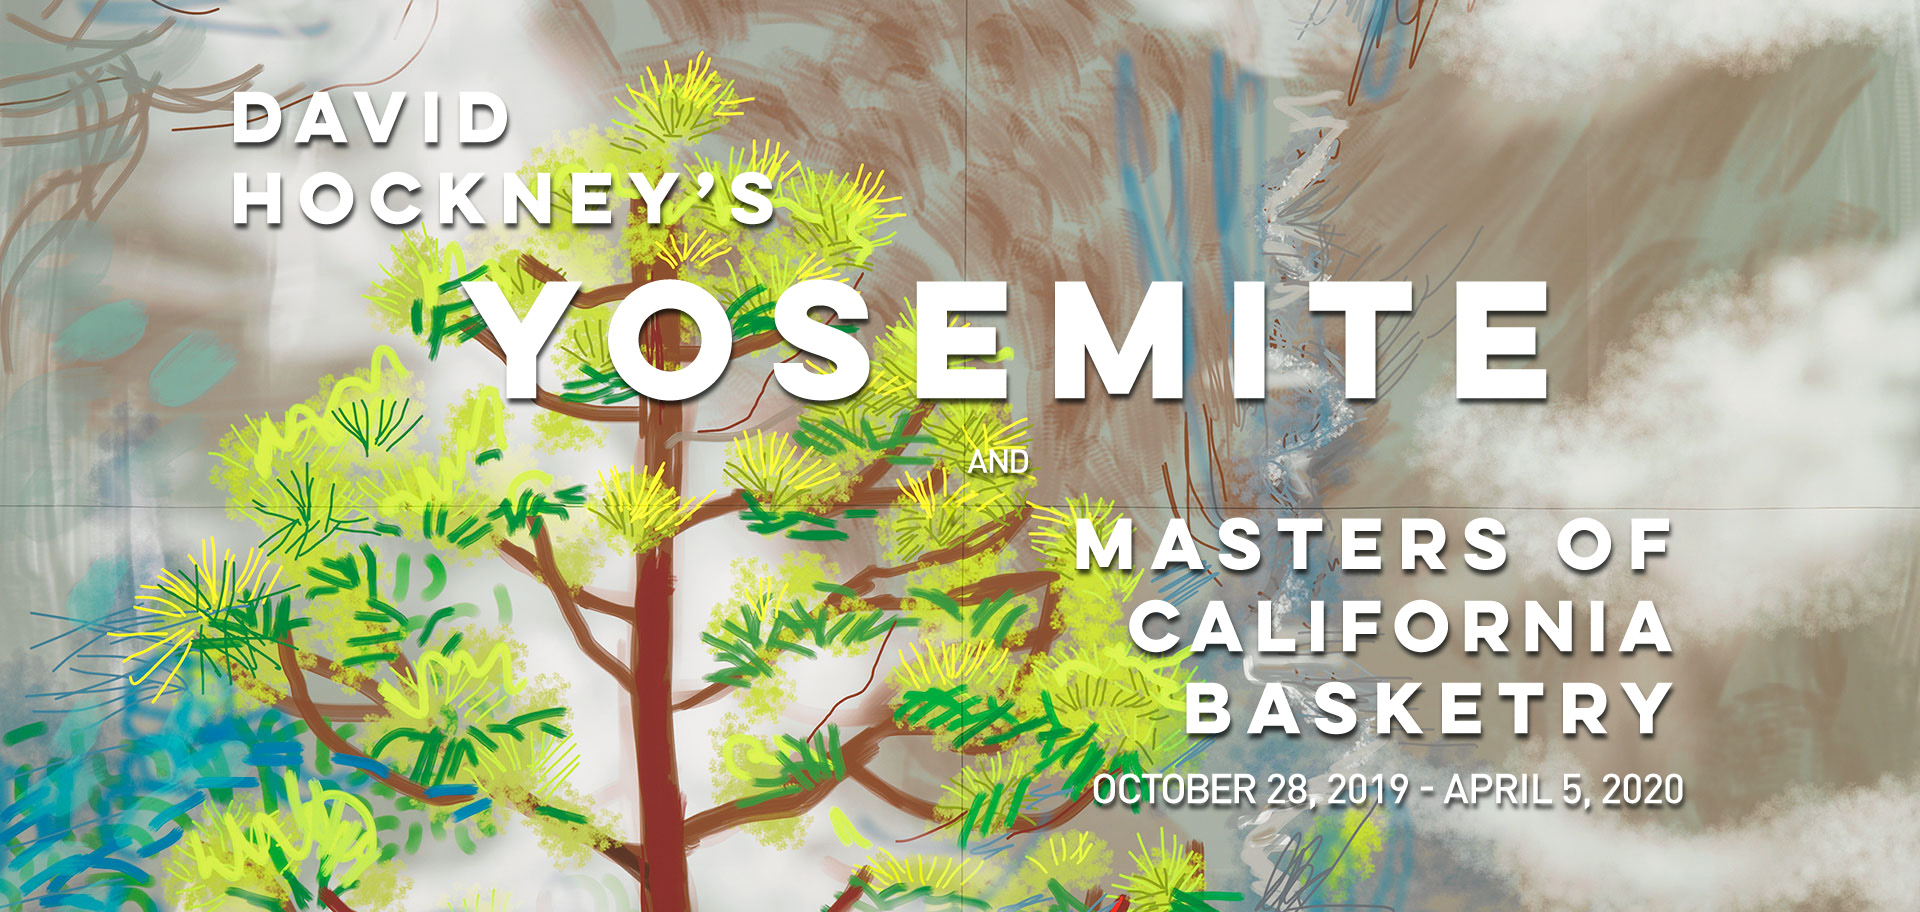 David Hockney's Yosemite